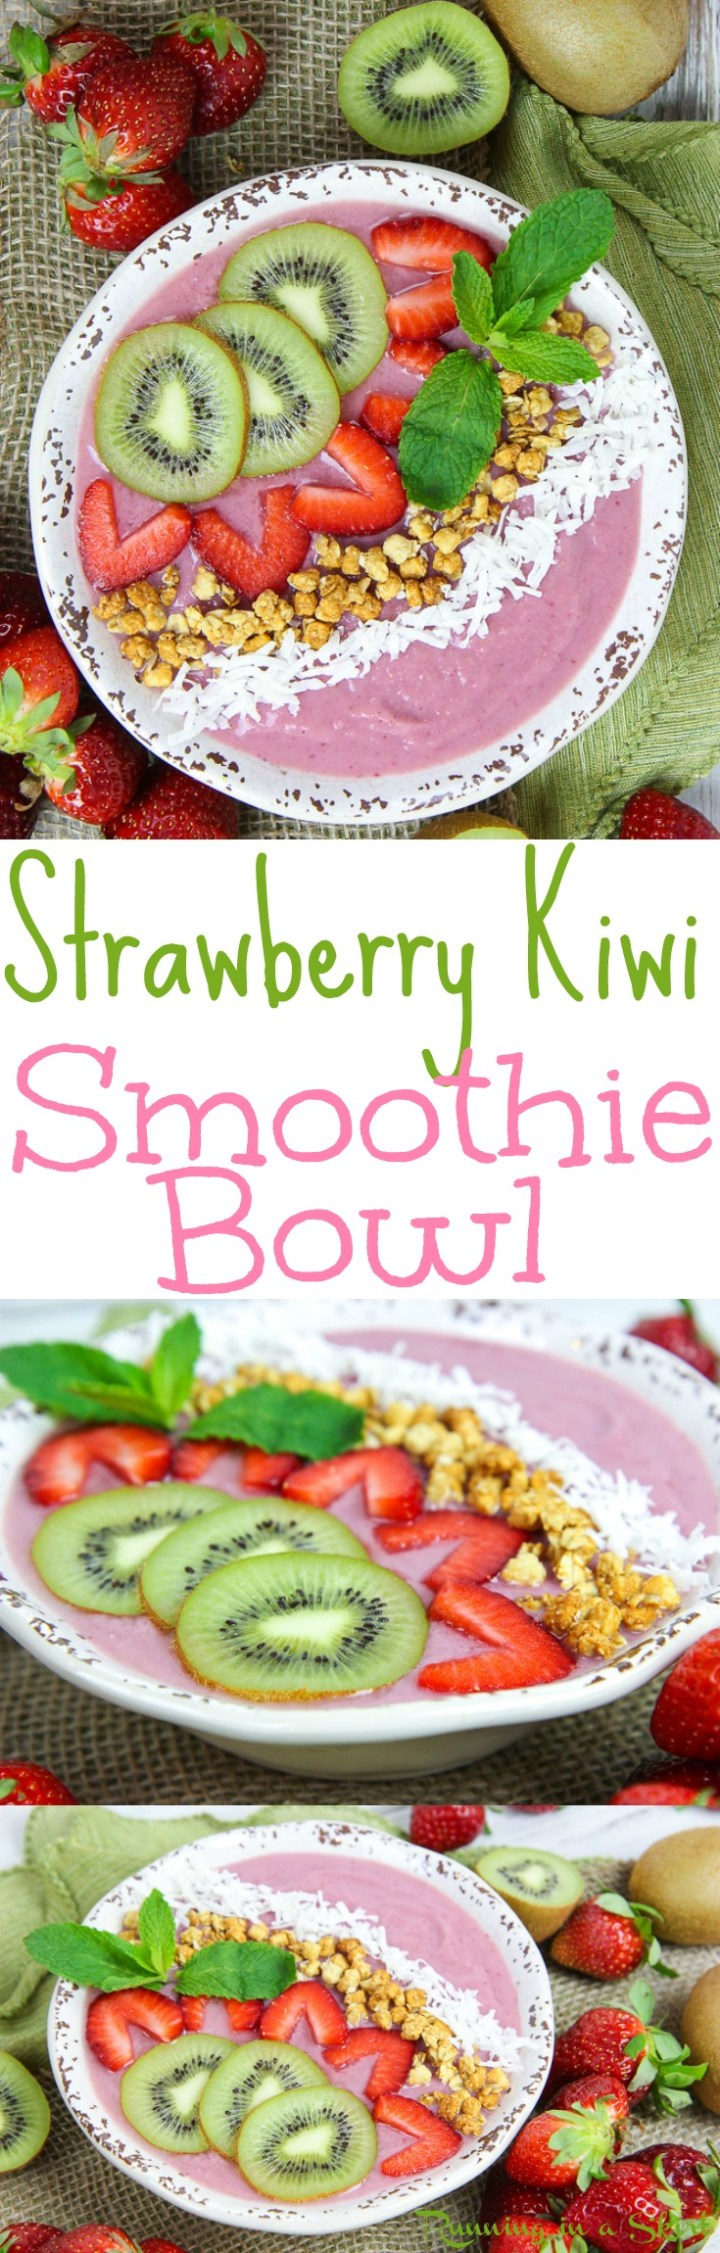 Healthy Kiwi Strawberry Smoothie Bowl recipe - a high protein vegan breakfast and the perfect simple and fun way to start your mornings or for snacks. Has fresh fruit and frozen bananas.... great for spring or summer. Gluten free, raw vegan & vegetarian. / Running in a Skirt via @juliewunder